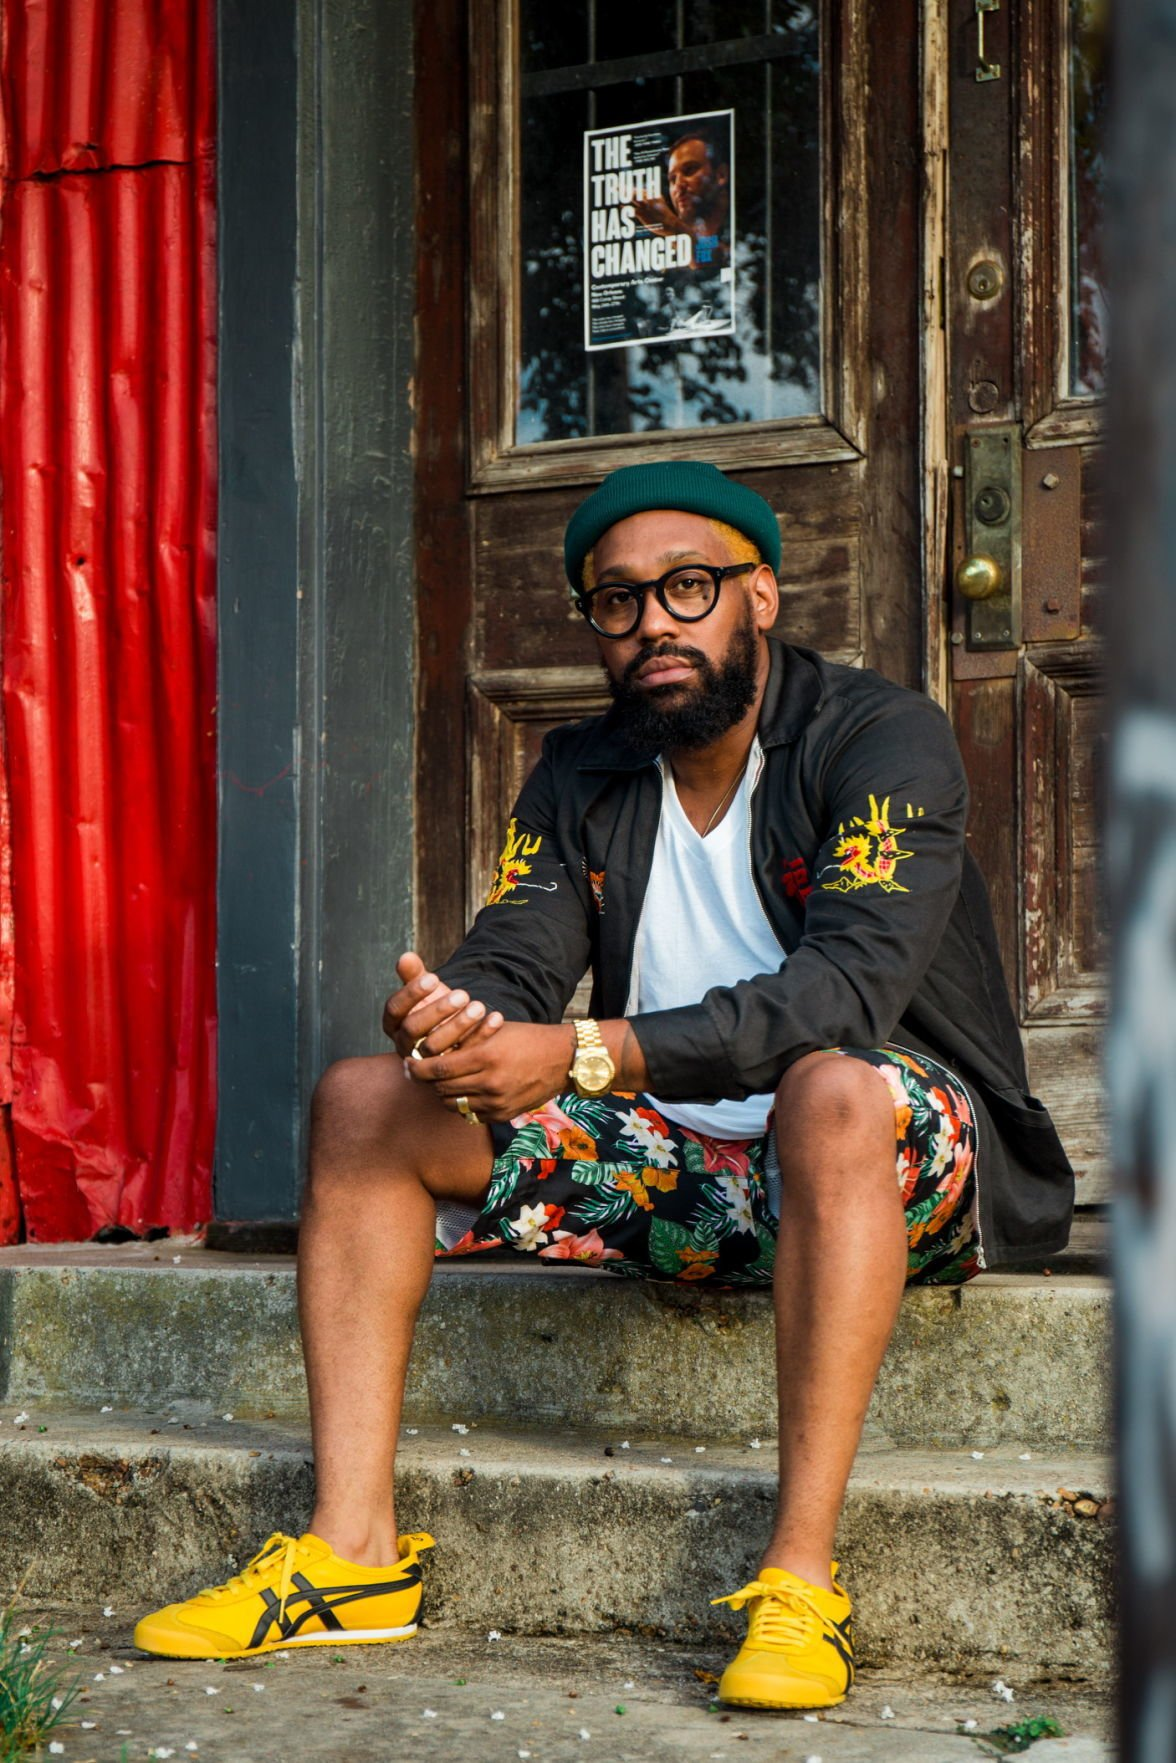 PJMorton_DominicScott2.JPG